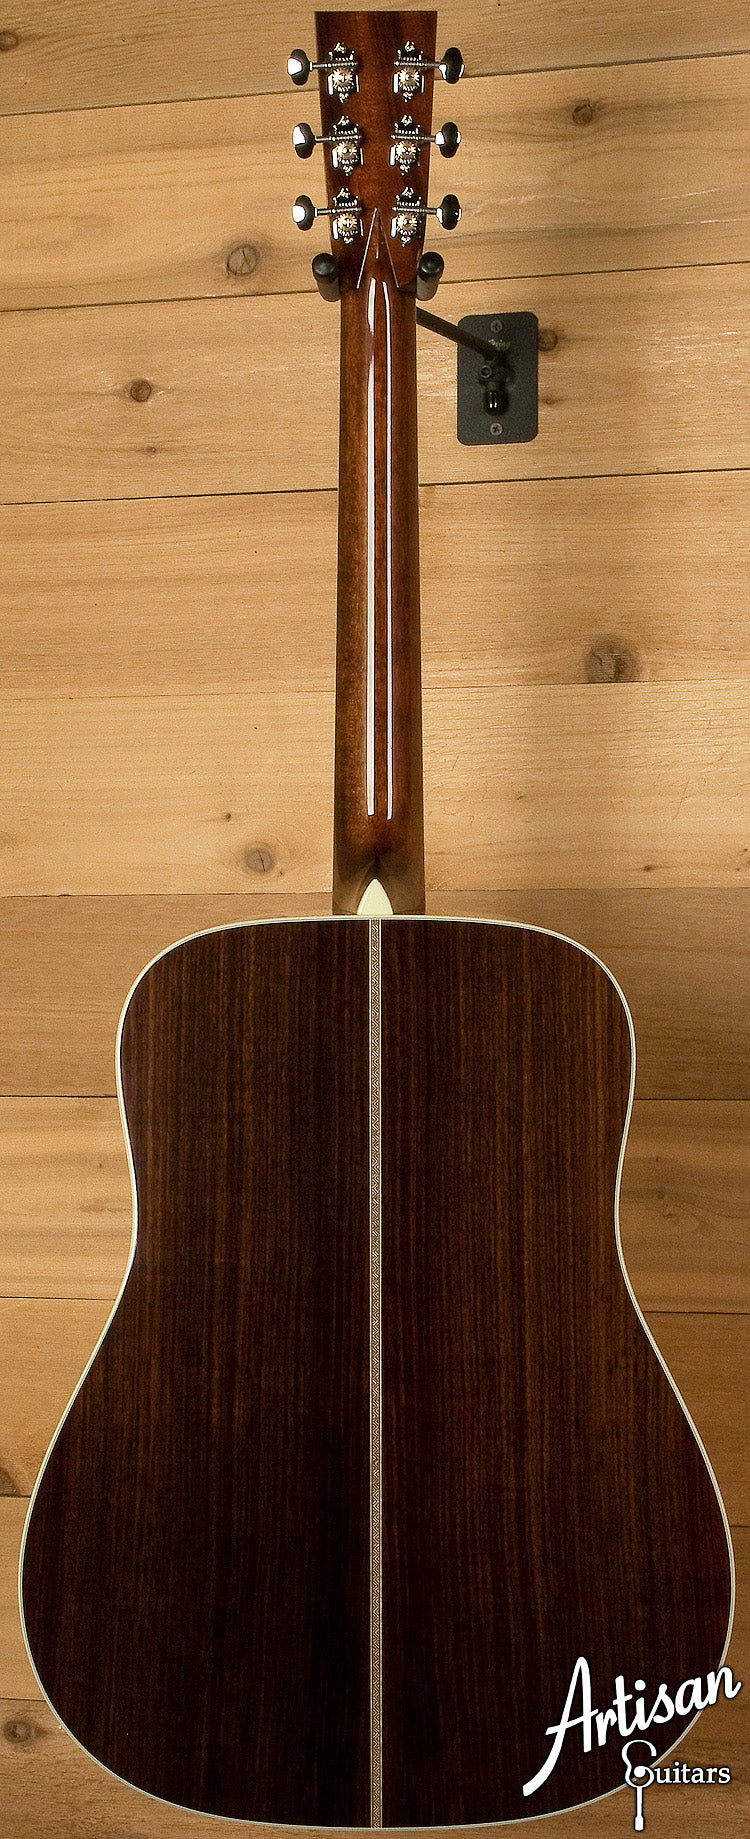 Collings CW Adirondack and Indian Rosewood with Adirondack Bracing and No Tongue Brace ID-6156